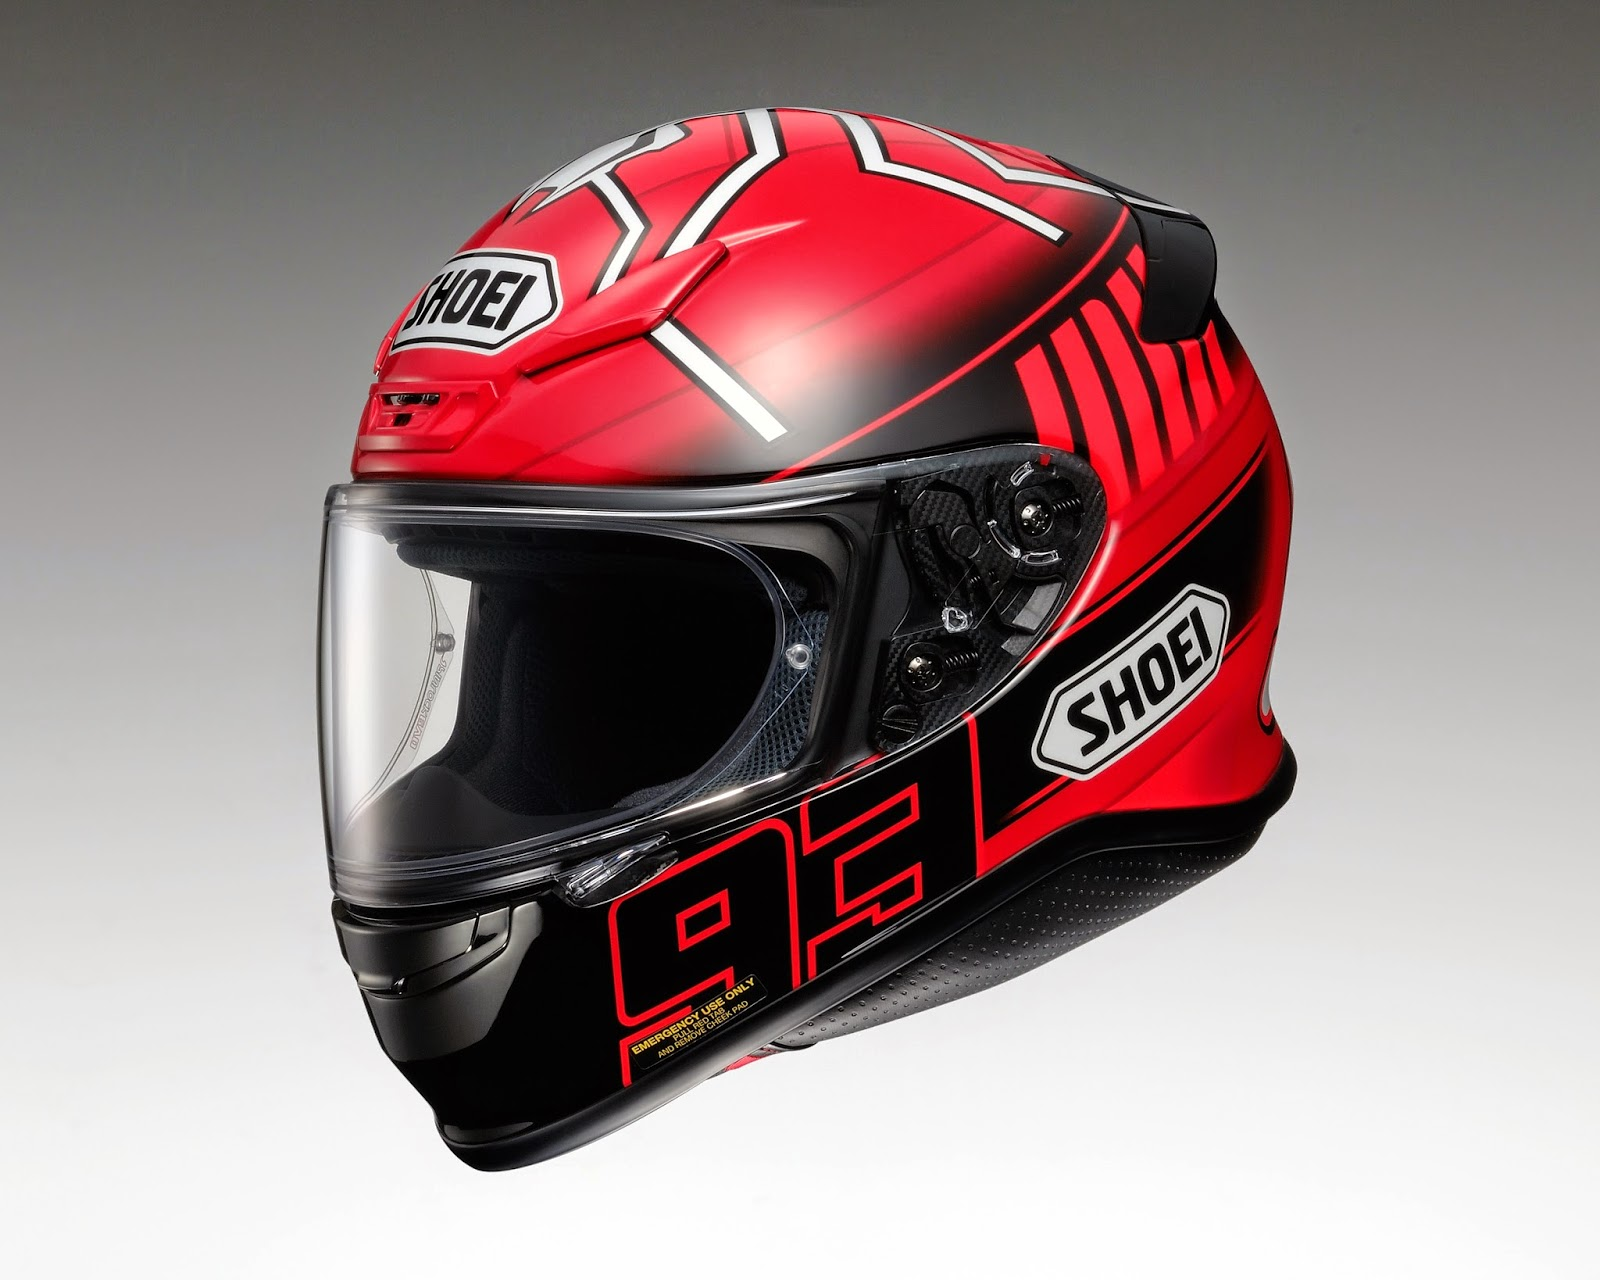 champion helmets new 2015 shoei marc marquez helmets